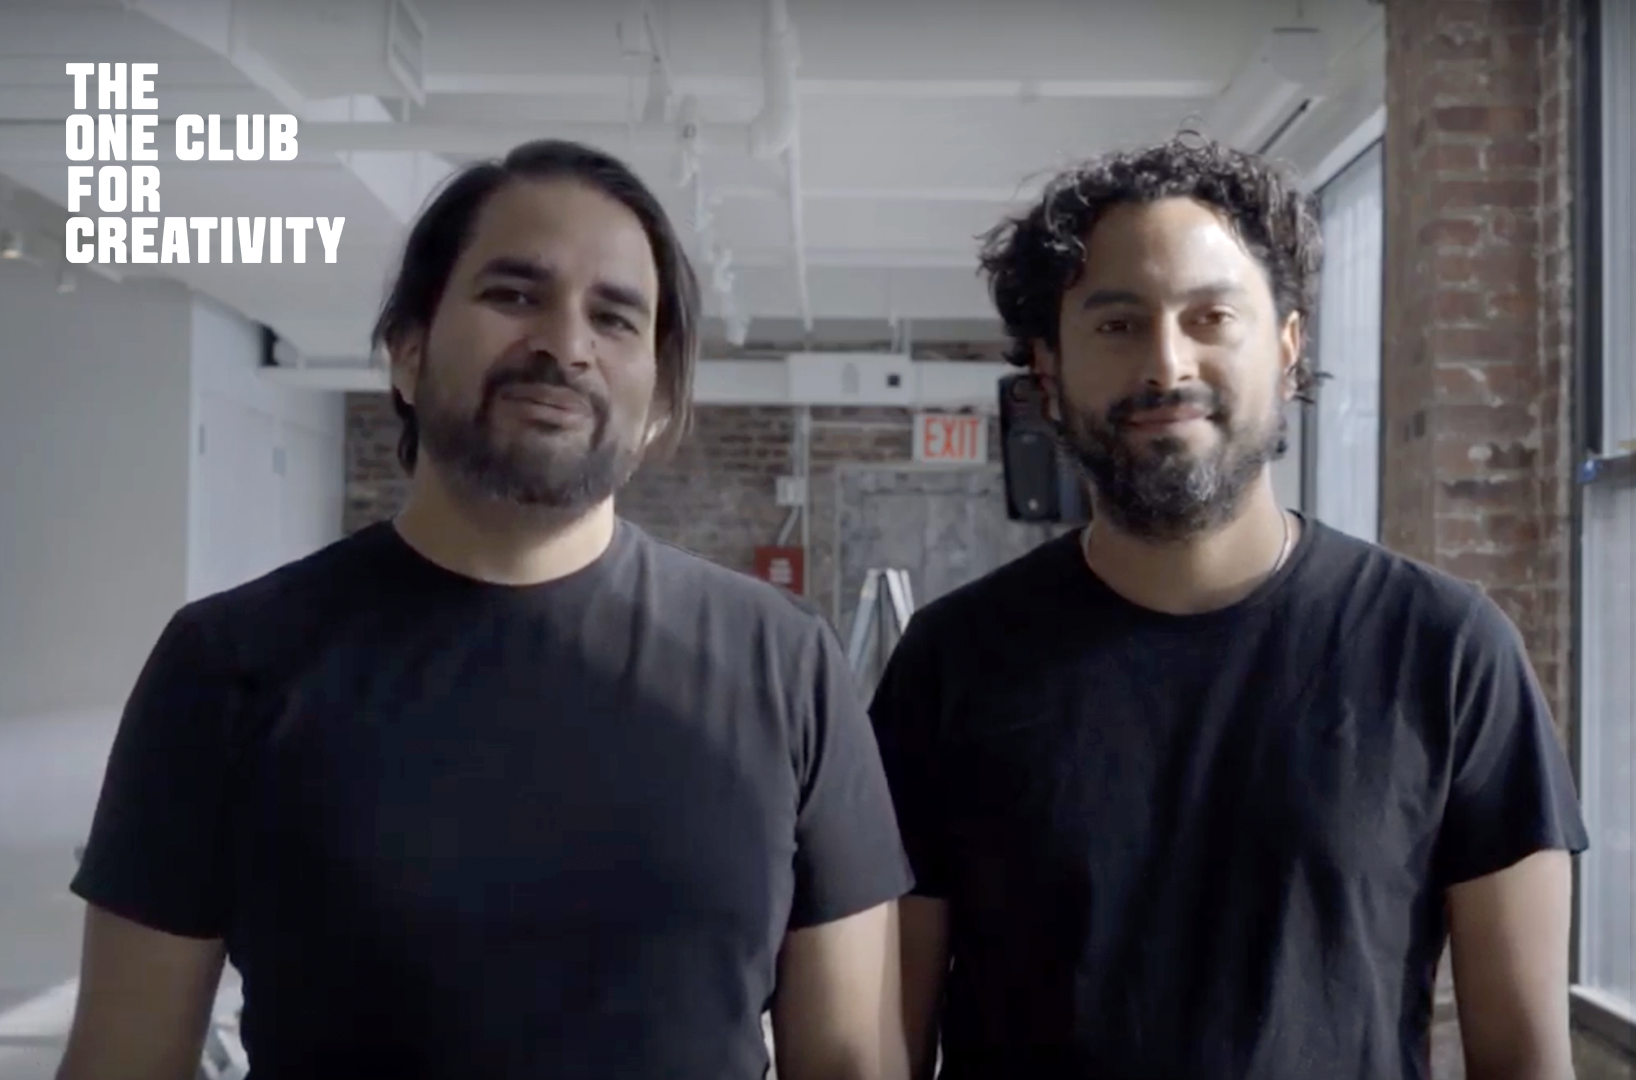 Lanfranco & Cordova brings The One Club For Creativity Portfolio Night to Lima - The event will be on Wednesday, May 22, 2019. It is set to unfold across the globe in more than 70 cities worldwide and it's the first time it will be held in Lima, Peru.